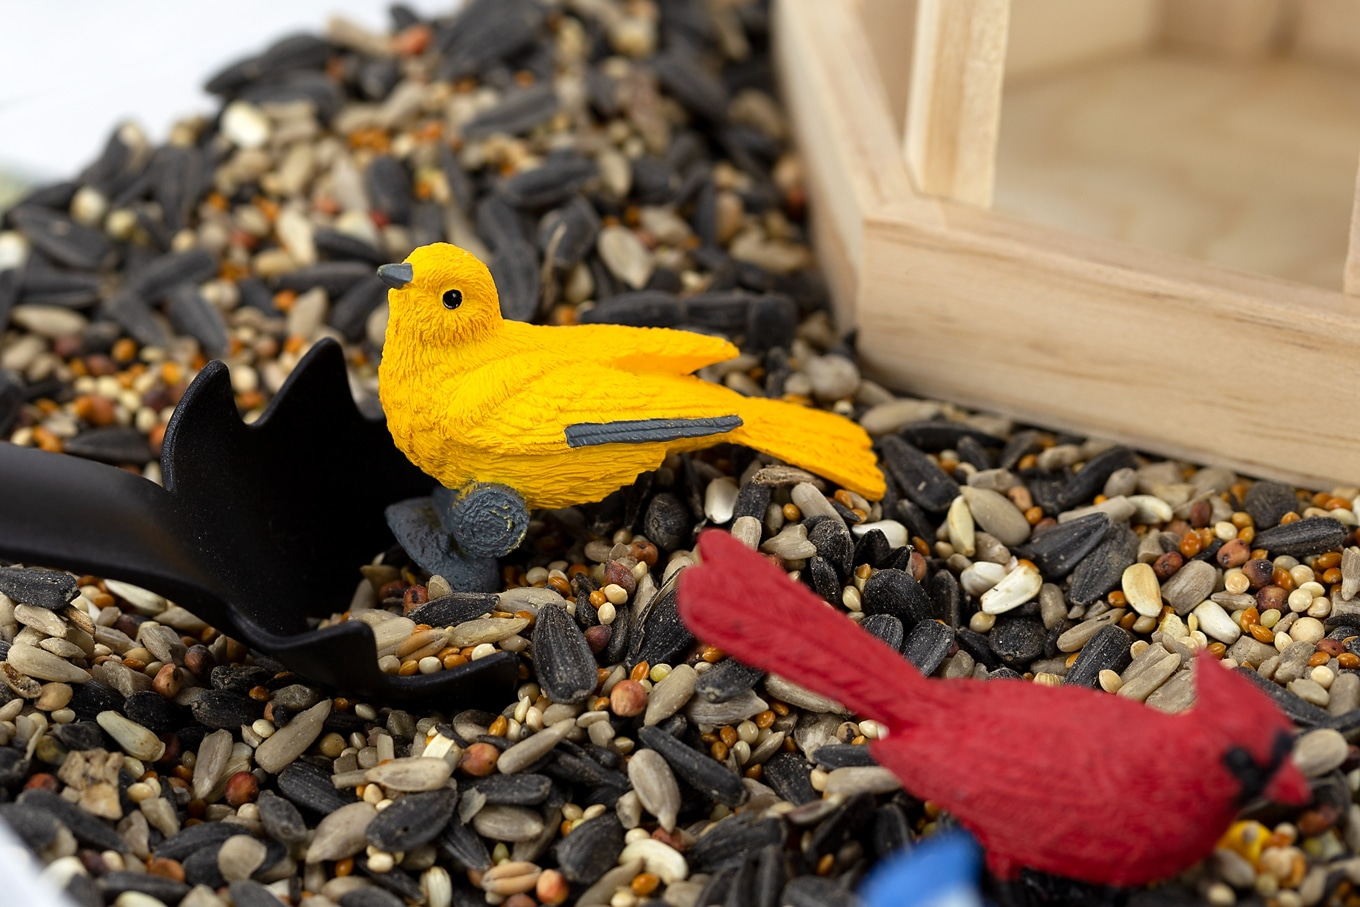 Yellow and Red Birds in a Birdseed Sensory Bin